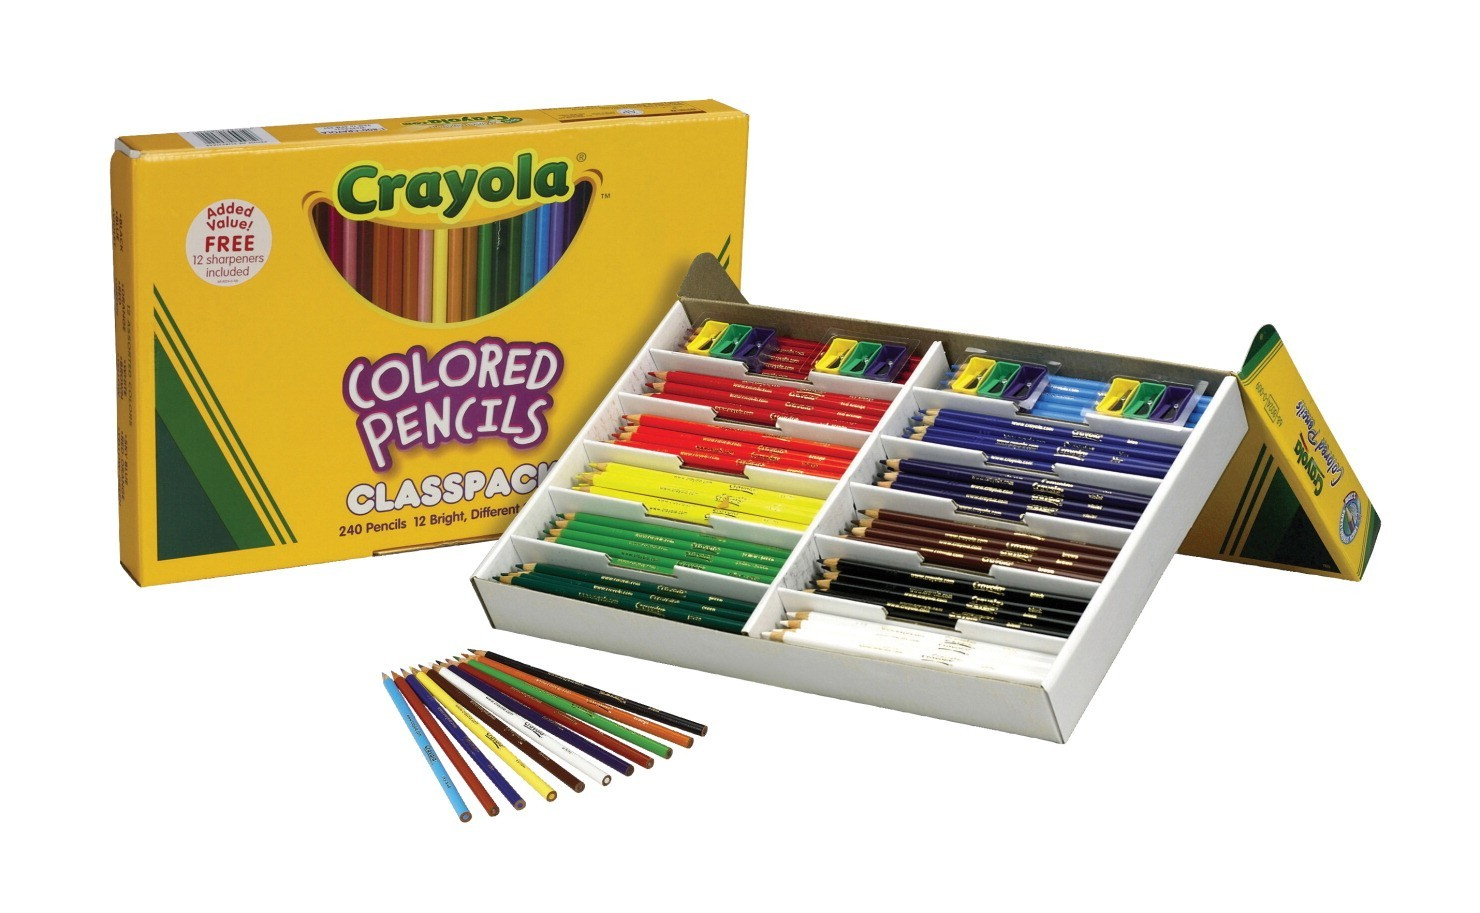 Crayola Colored Pencil Class Pack, Pre-sharpened Pencils In Sturdy Storage Boxes With Flip Up Lids, 20 Each Of 12 Colors - 240/Pkg